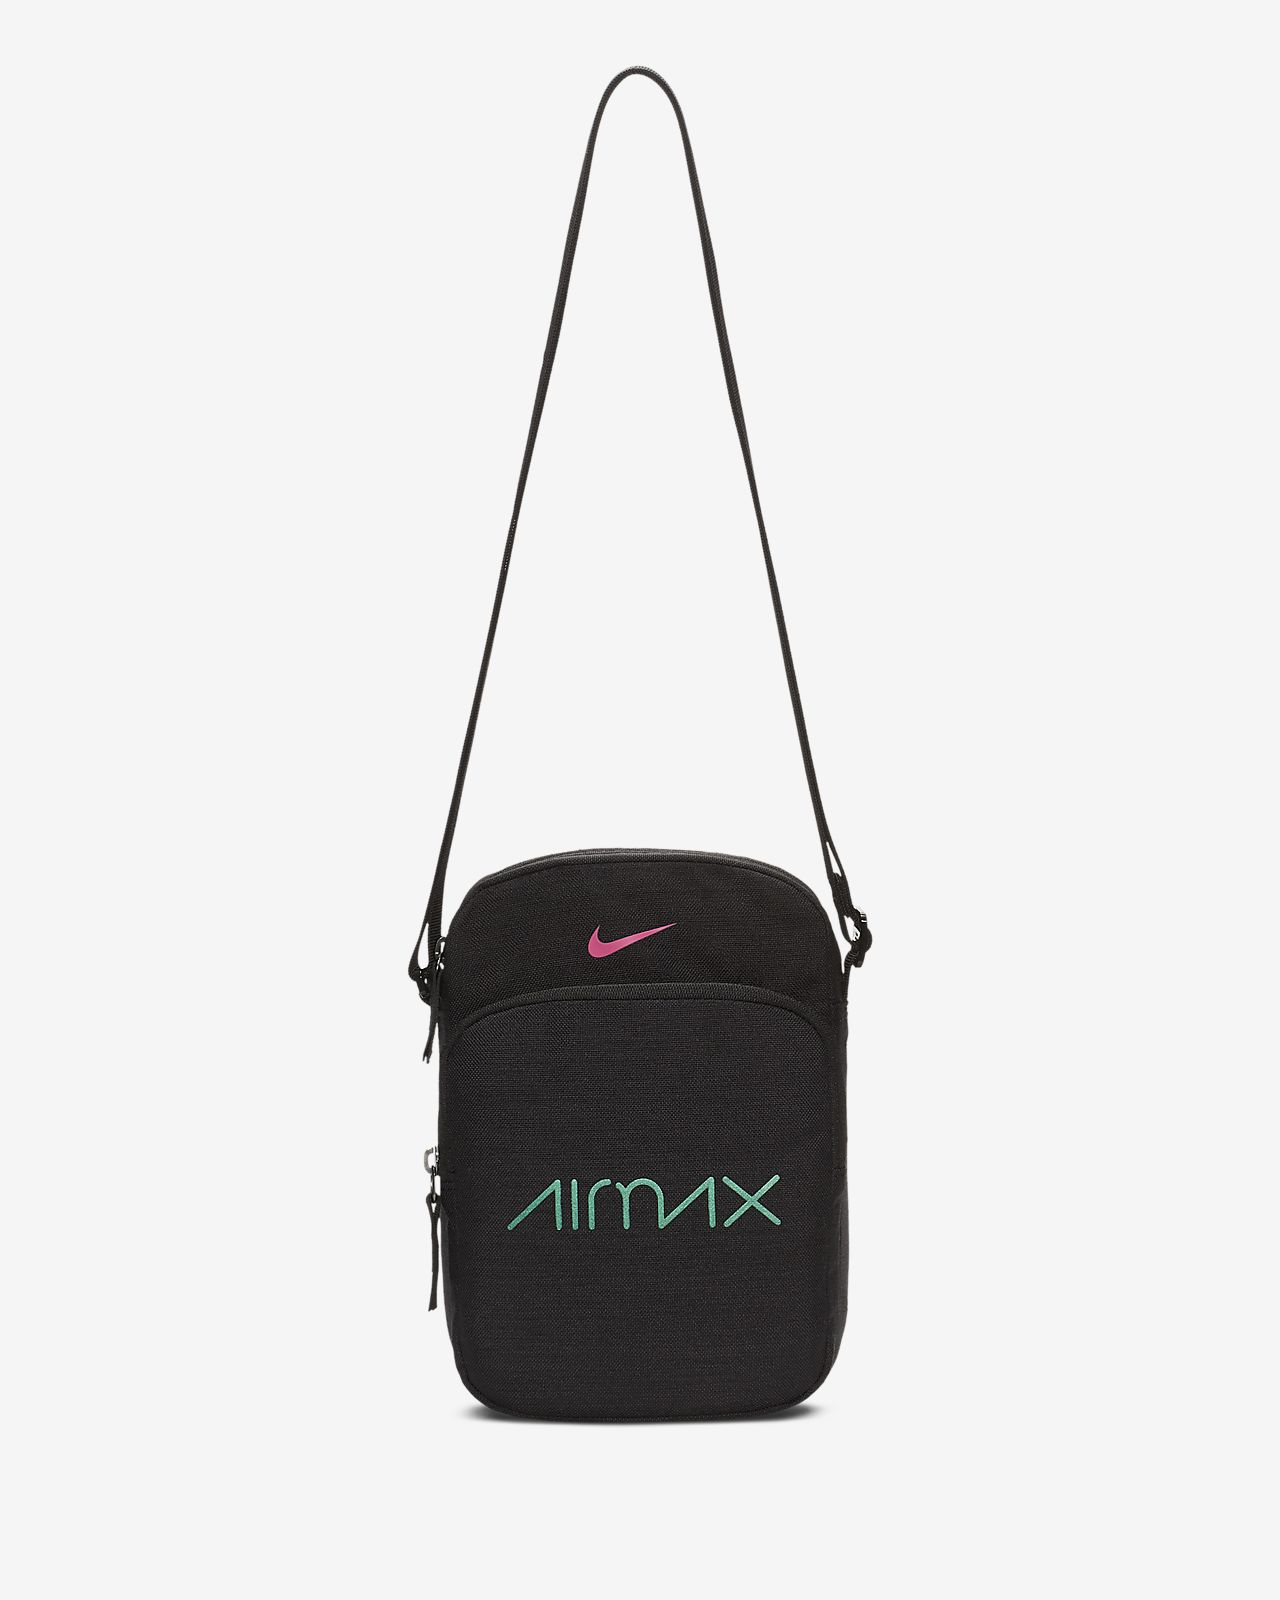 7ac3067f605 Nike Heritage Air Max Day Small-Items Bag. Nike.com GB